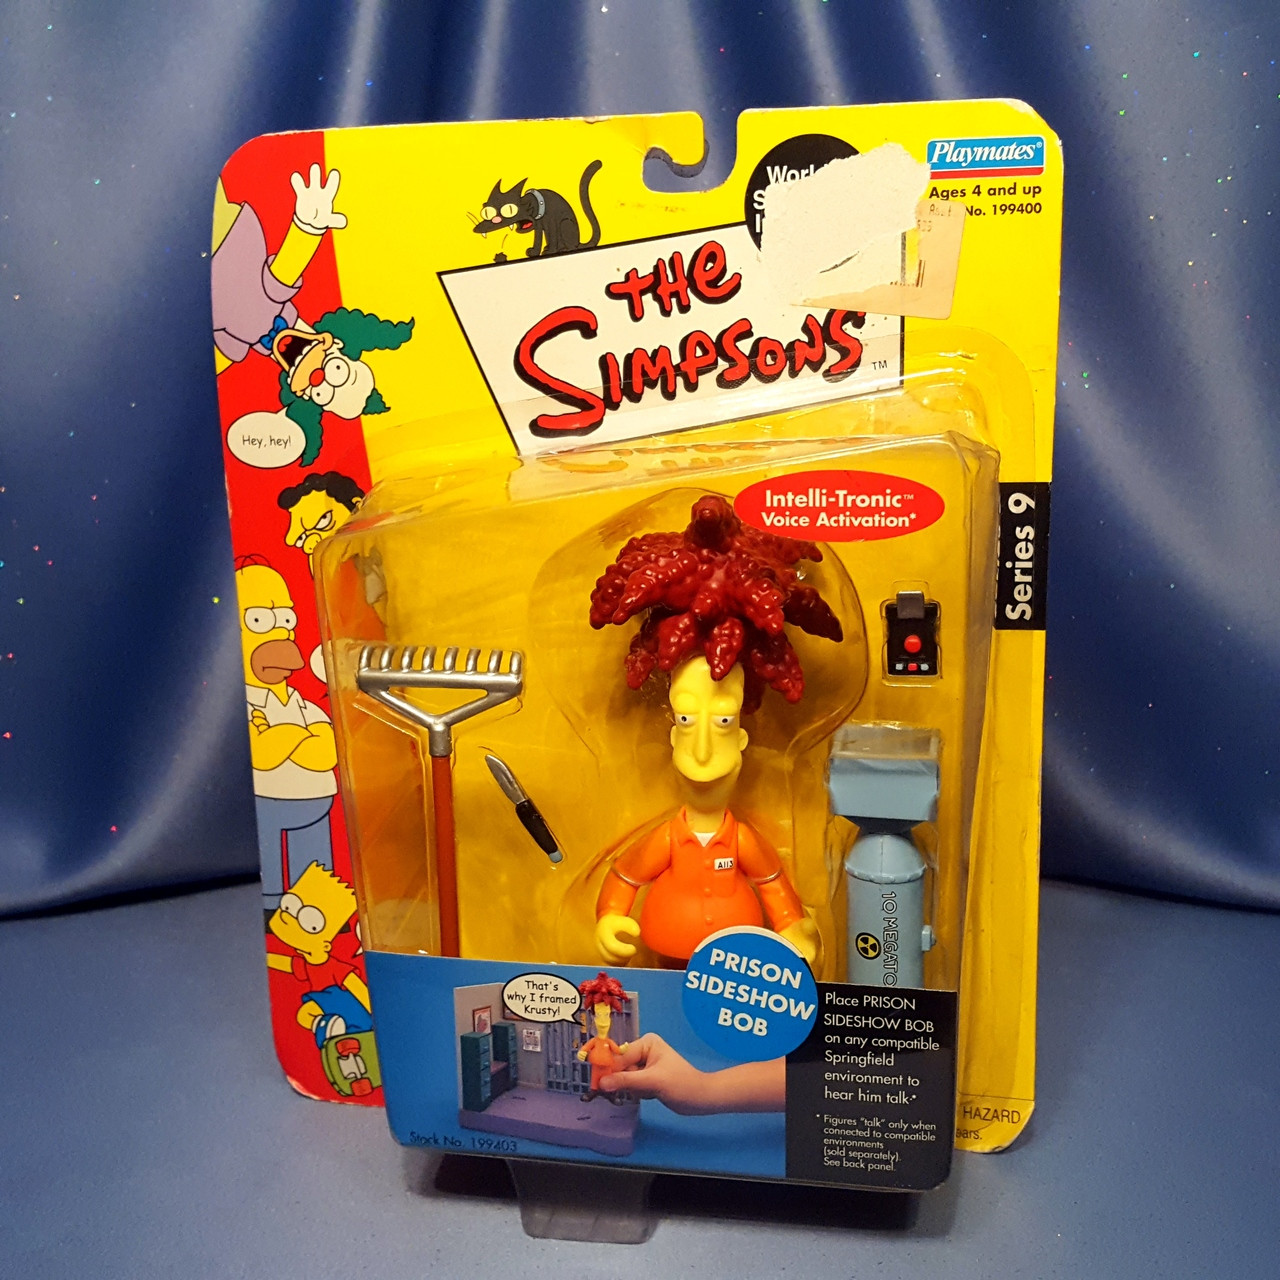 The Simpsons - Prison Sideshow Bob.